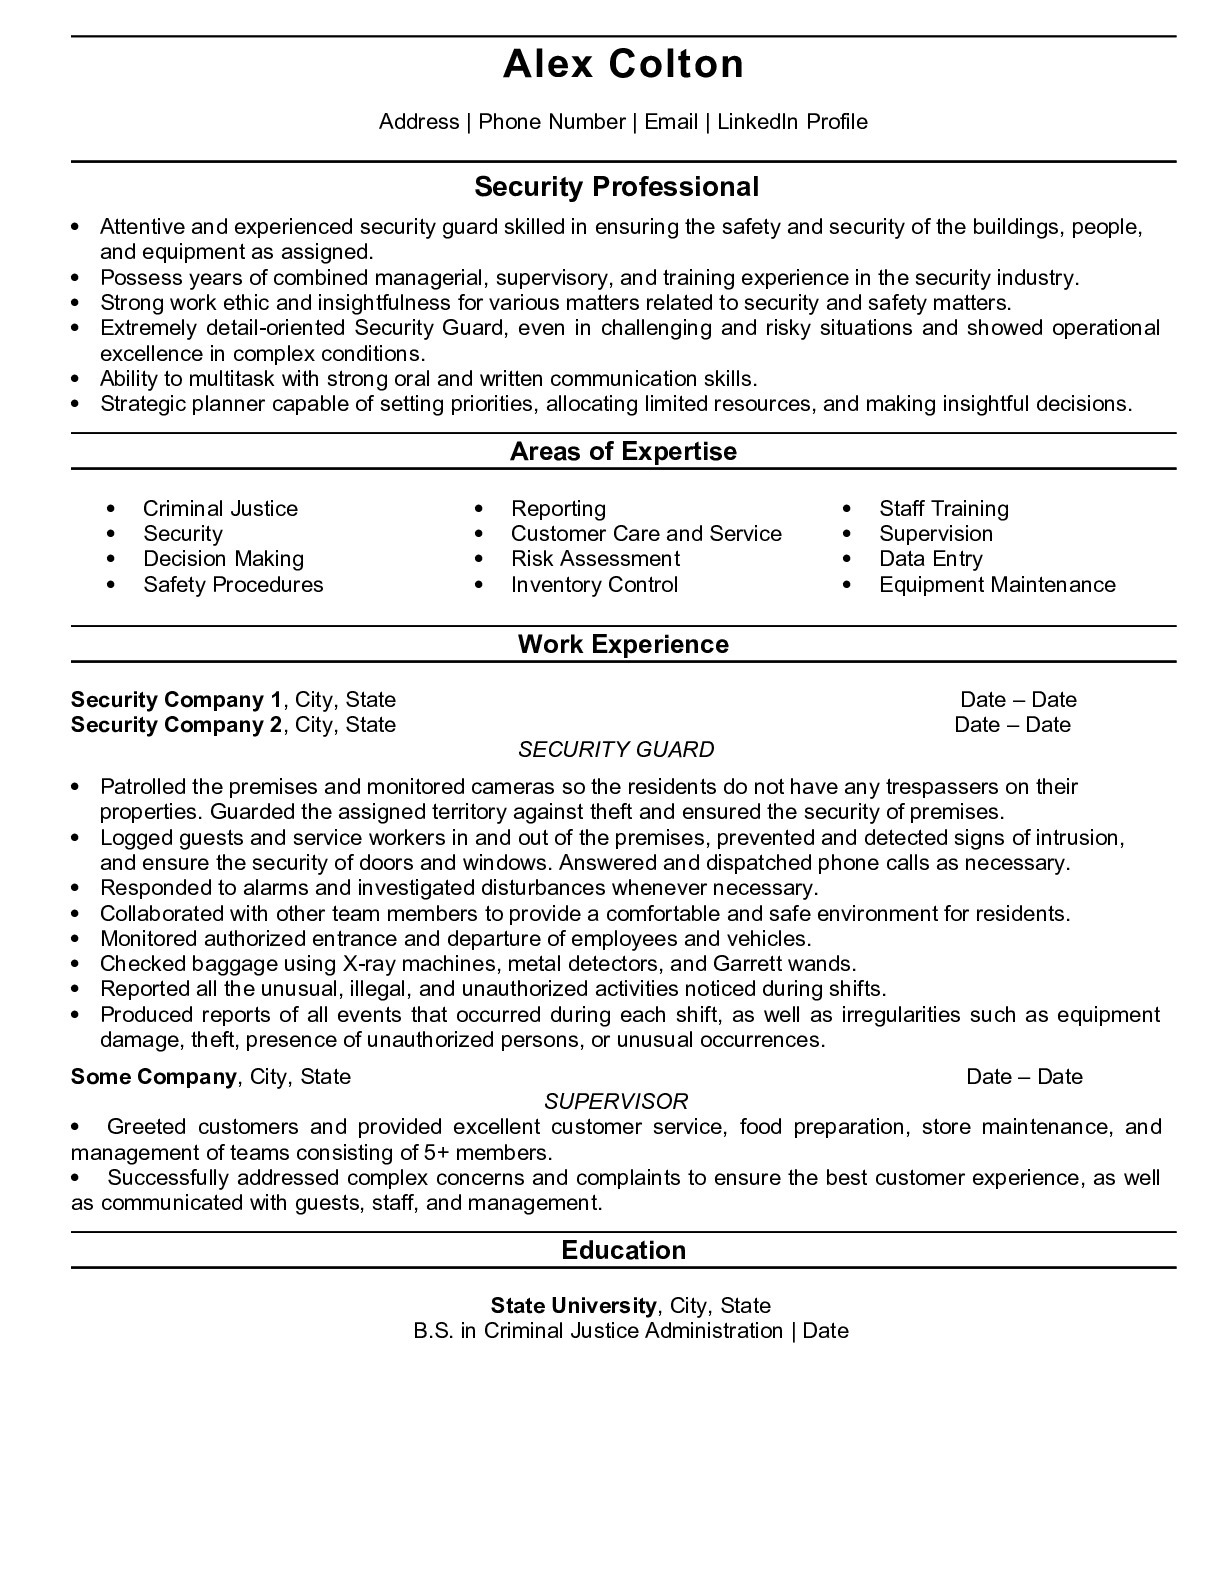 Resume Example for Security Guard